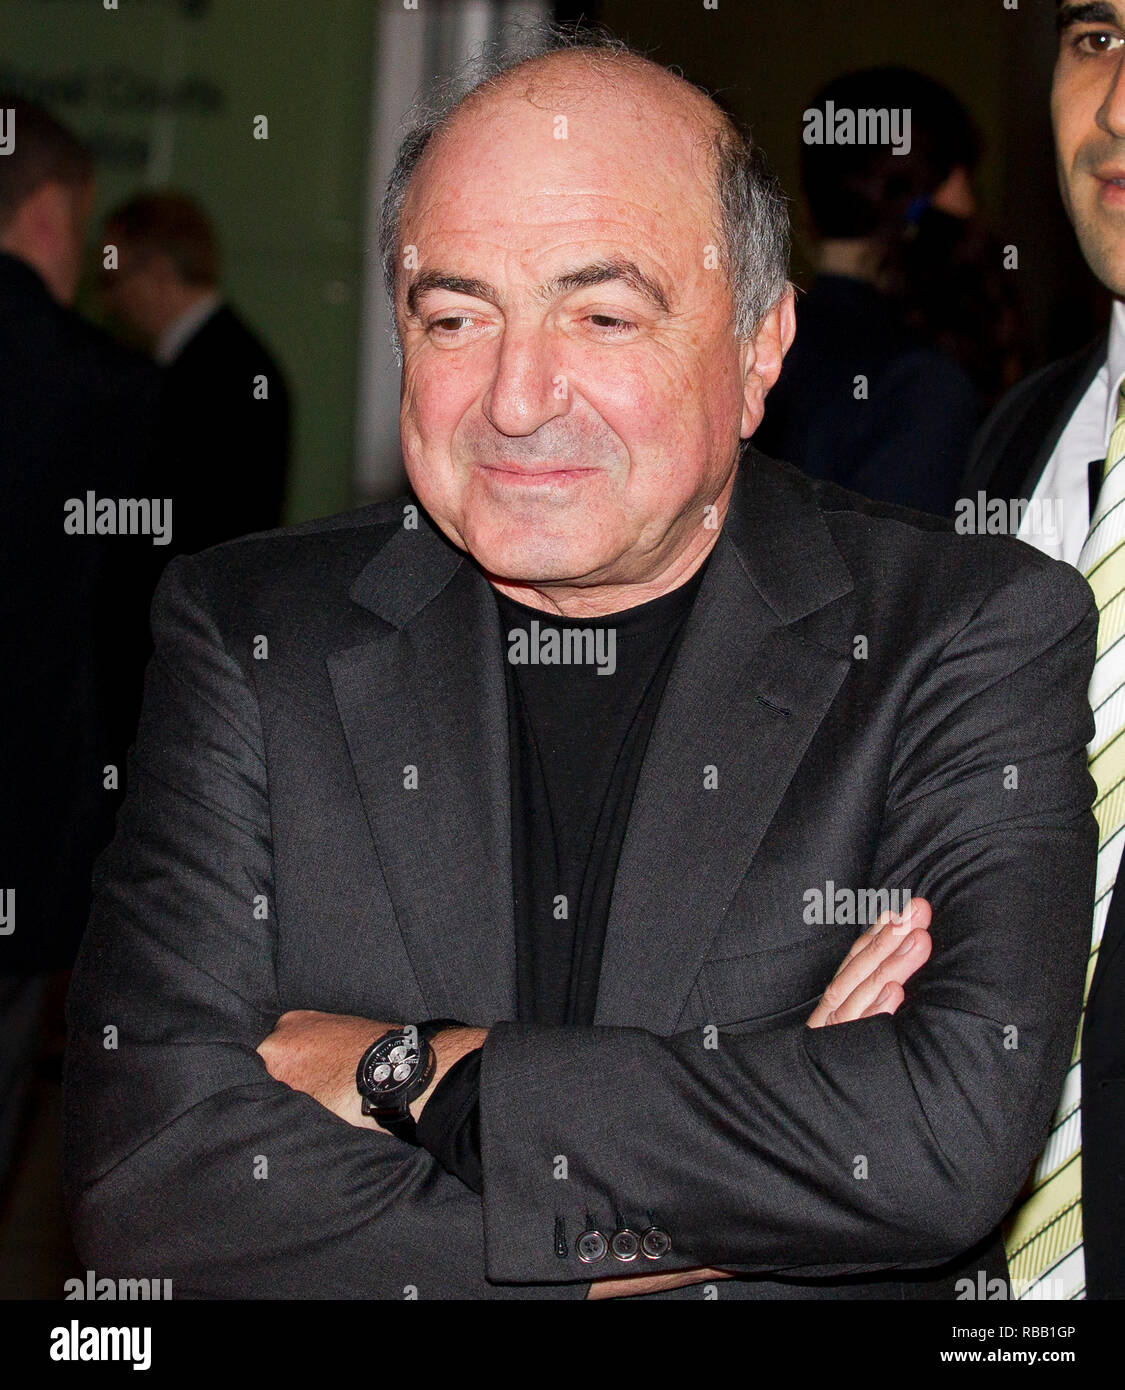 Russian oligarch Boris Berezovsky leaves the High Court on Nov 14, 2011 in London, during a legal battle with fellow tycoon Roman Abramovich. - Stock Image